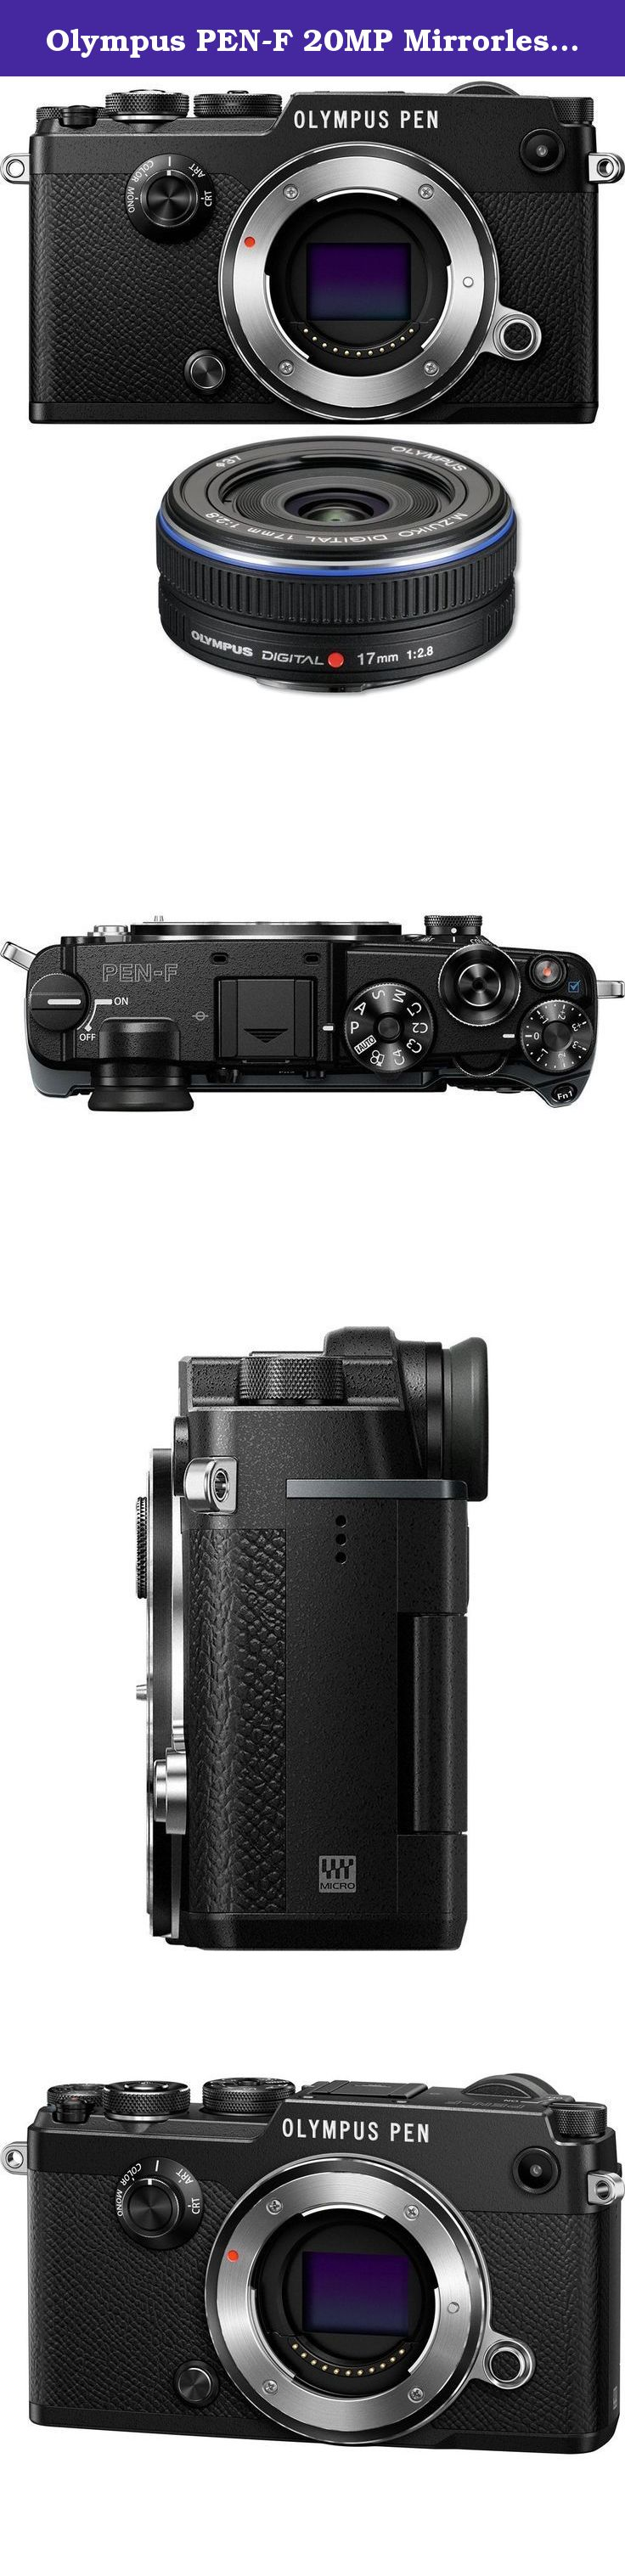 Olympus PEN-F 20MP Mirrorless Micro Four Thirds Digital ...